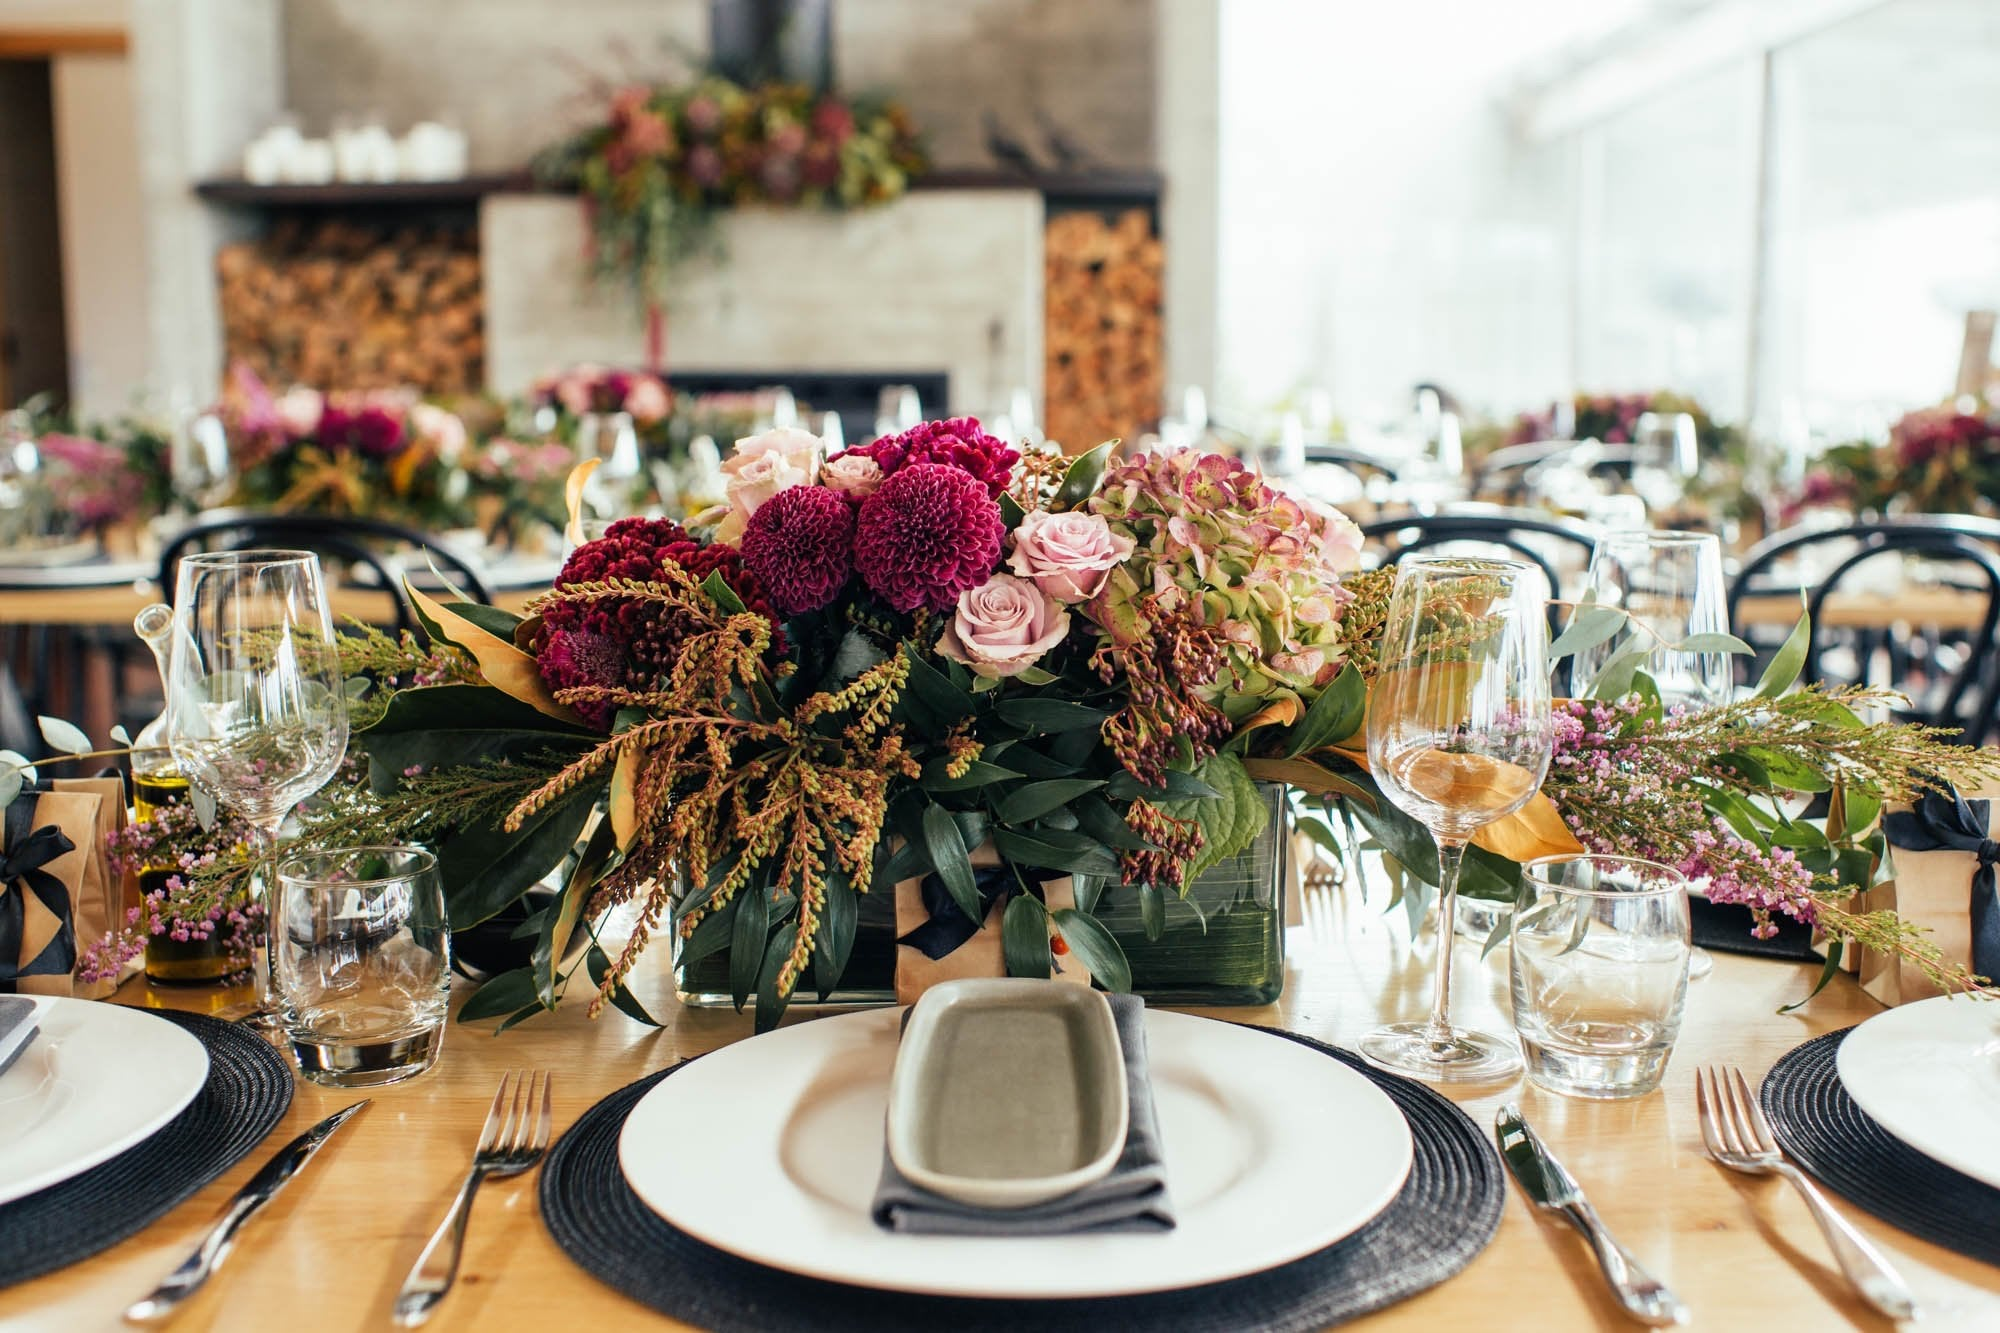 DIY Weddings - 3-Class Experience - Bouquets and Buttonholes, Table Flowers, and Creative Installations